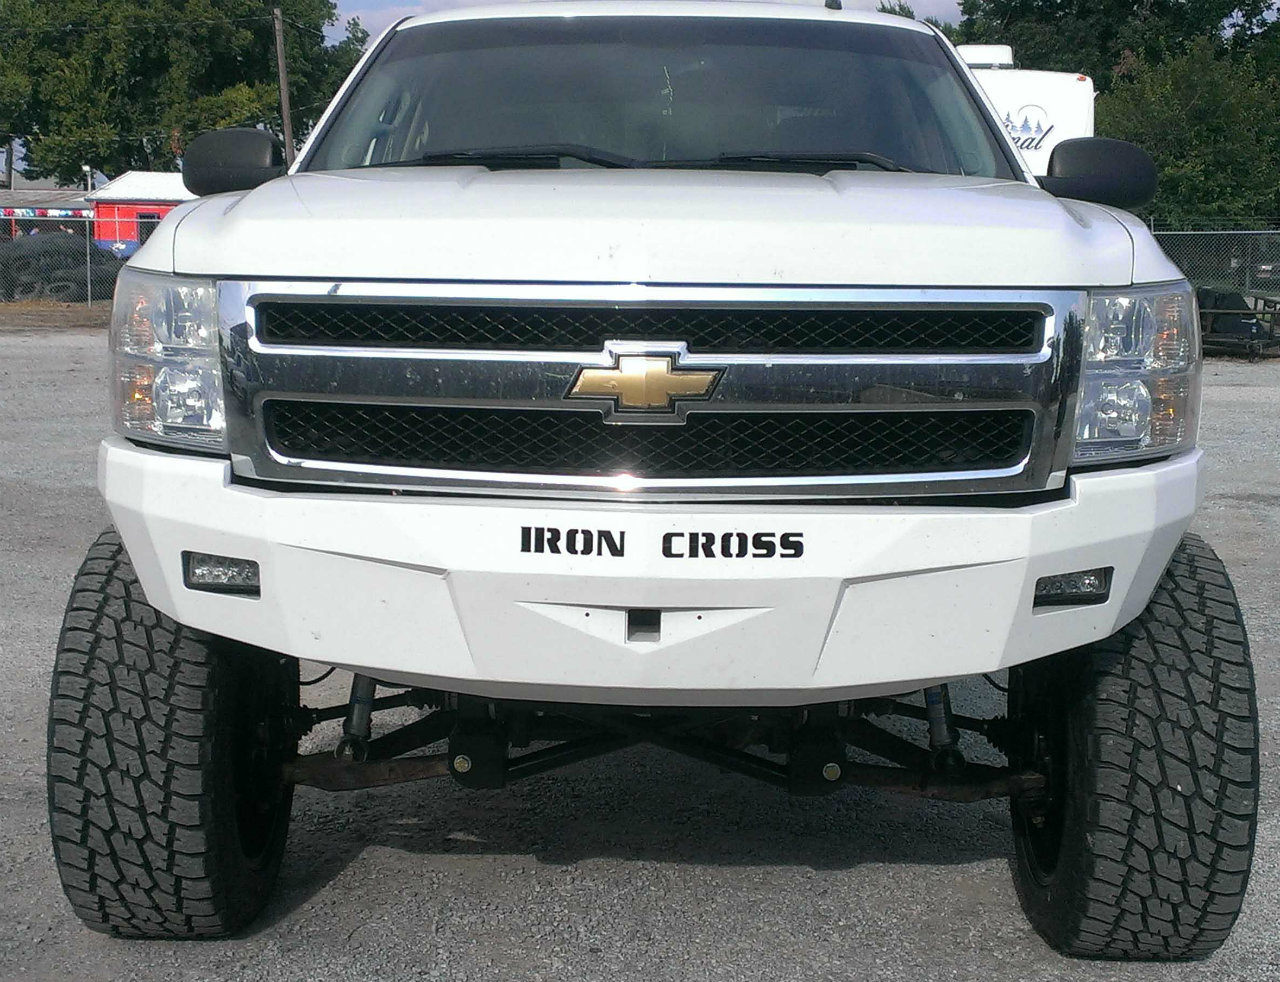 Chevrolet Silverado 1500 Iron Cross bumper – Performance ...